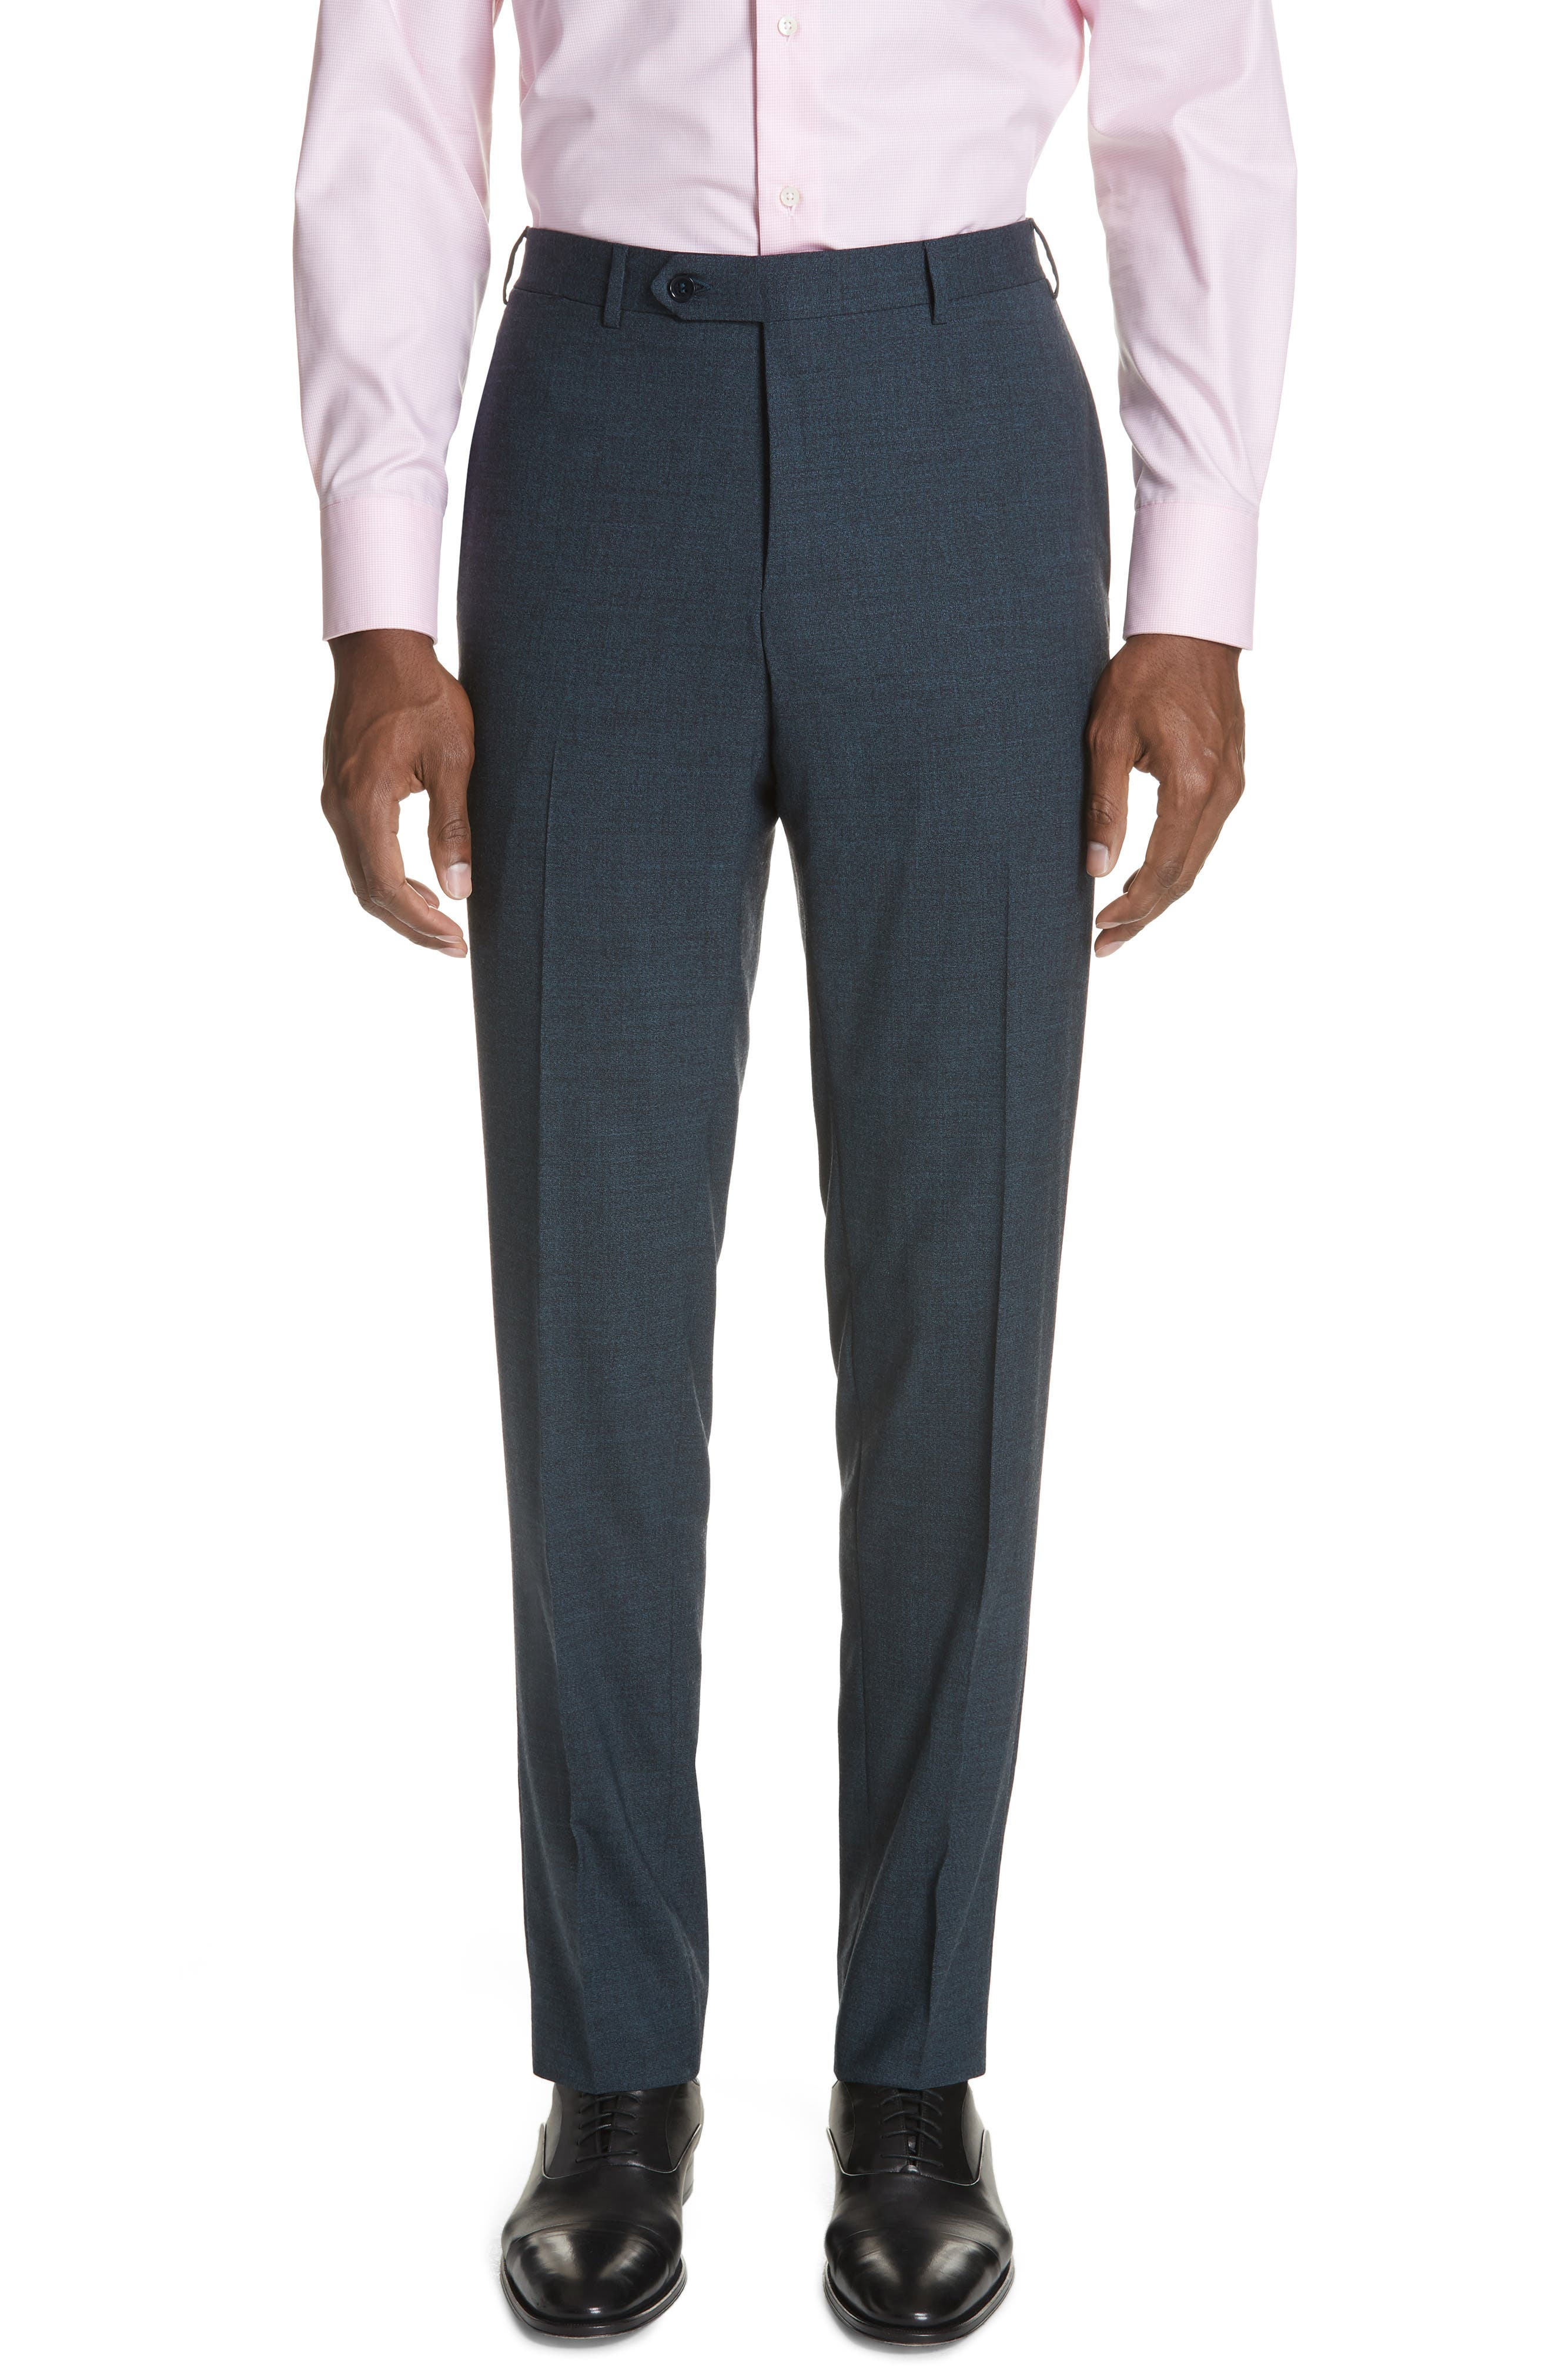 CANALI,                             Classic Fit Stretch Solid Wool Suit,                             Alternate thumbnail 5, color,                             400